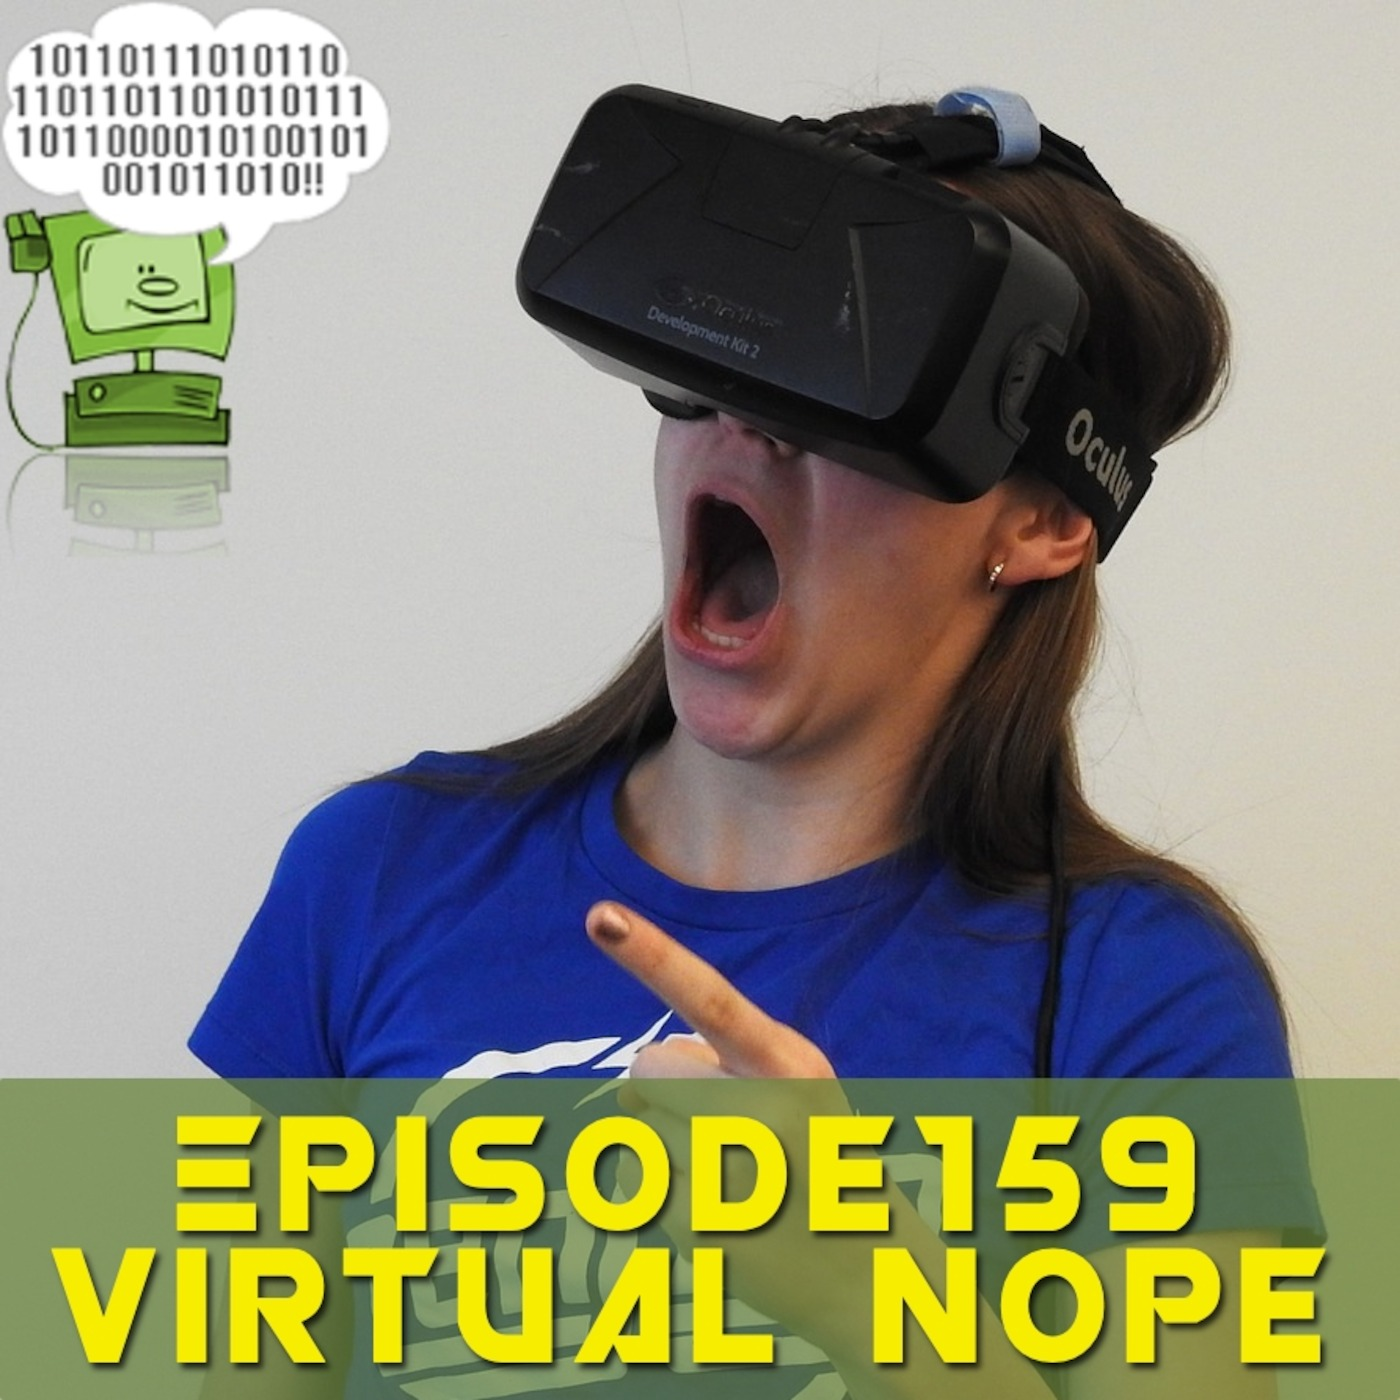 Episode 159 - Virtual Nope! IT Babble's podcast